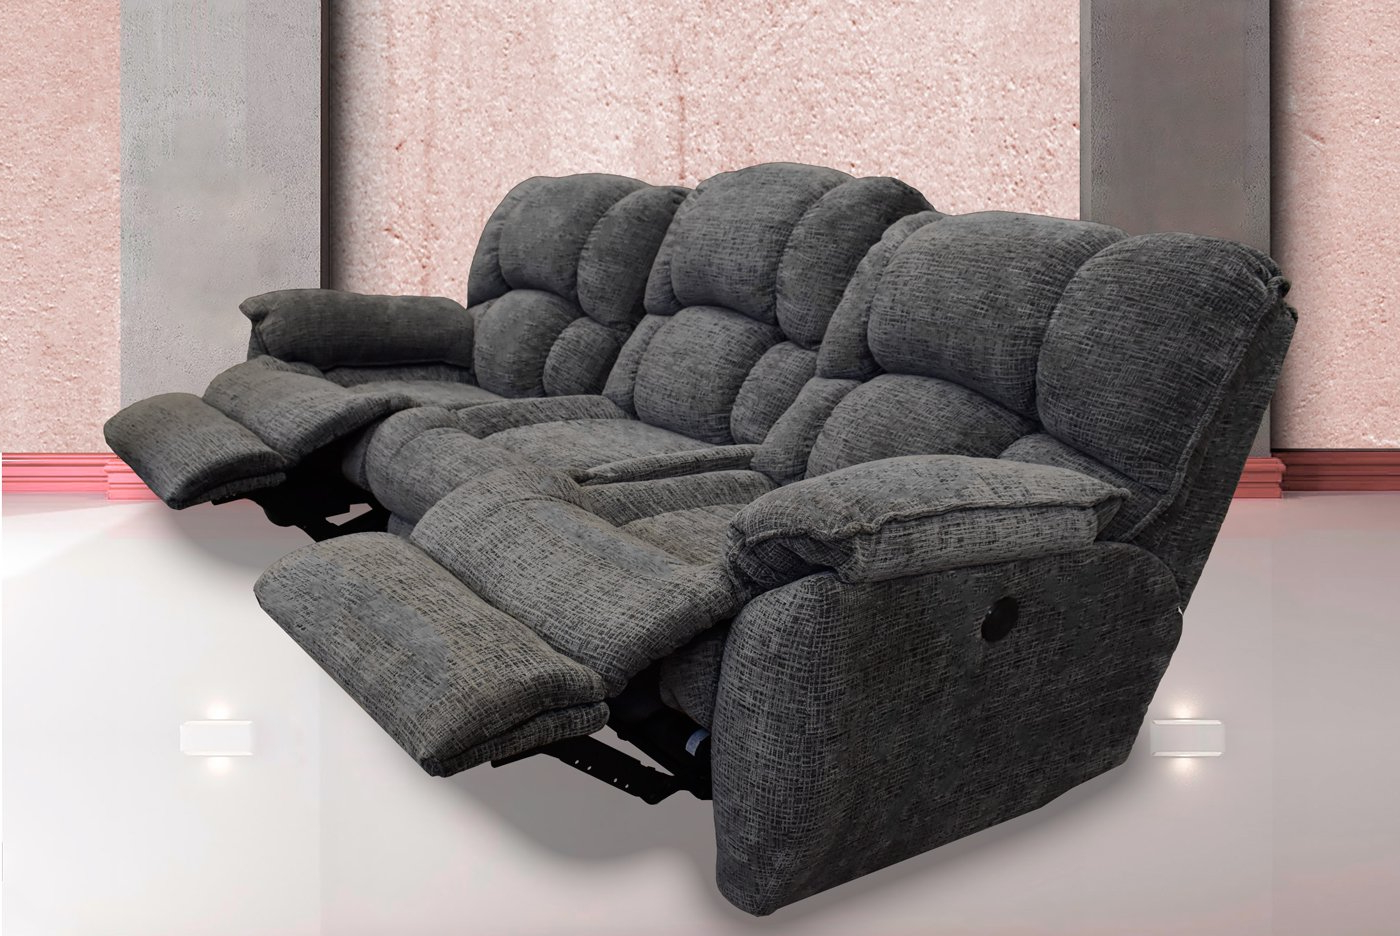 Muebles sofas O2d5 sofa 739 Reclinable Electrico Boardwalk Grey Muebles Troncoso